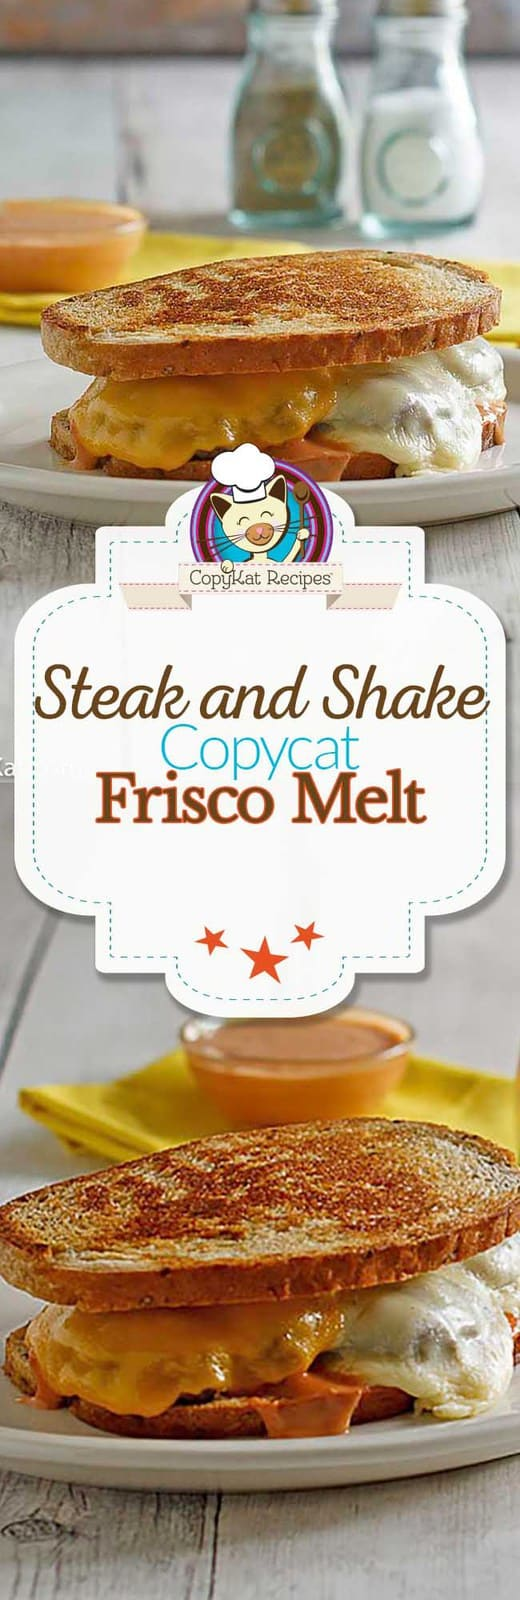 Recreate the Steak and Shake Frisco Melt at home with this copycat recipe.